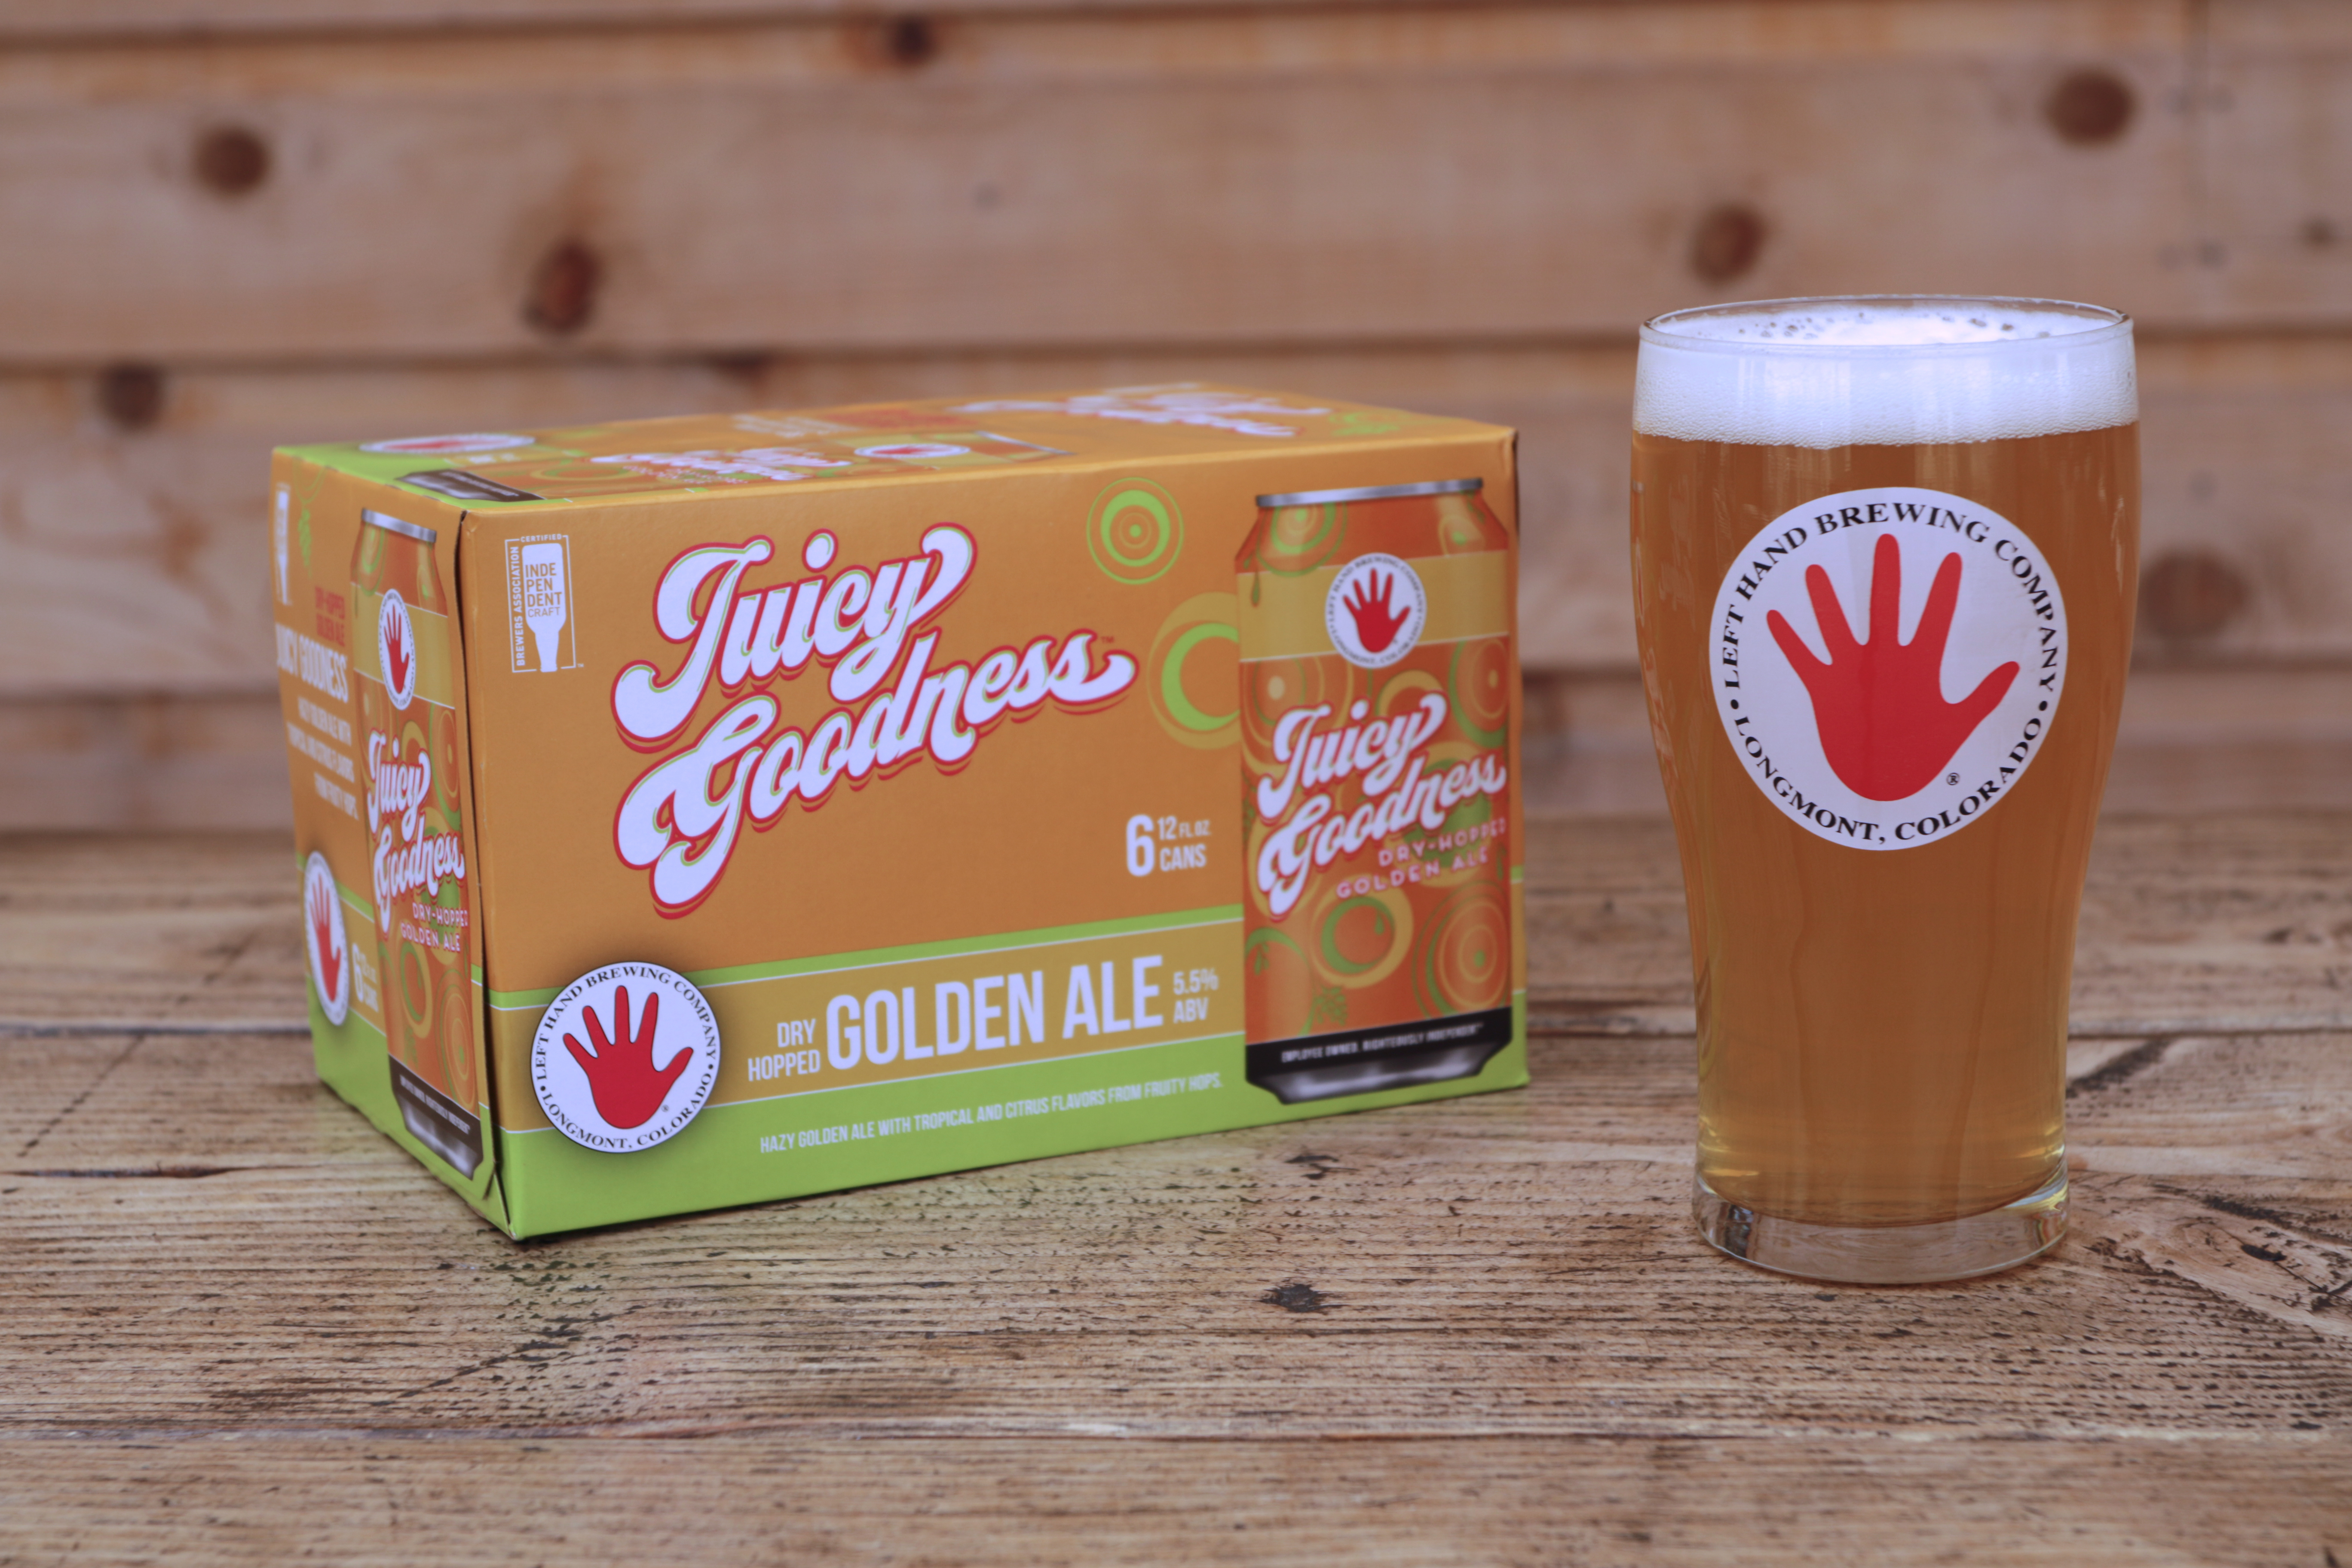 image of Juicy Goodness Dry Hopped Golden Ale courtesy of Left Hand Brewing